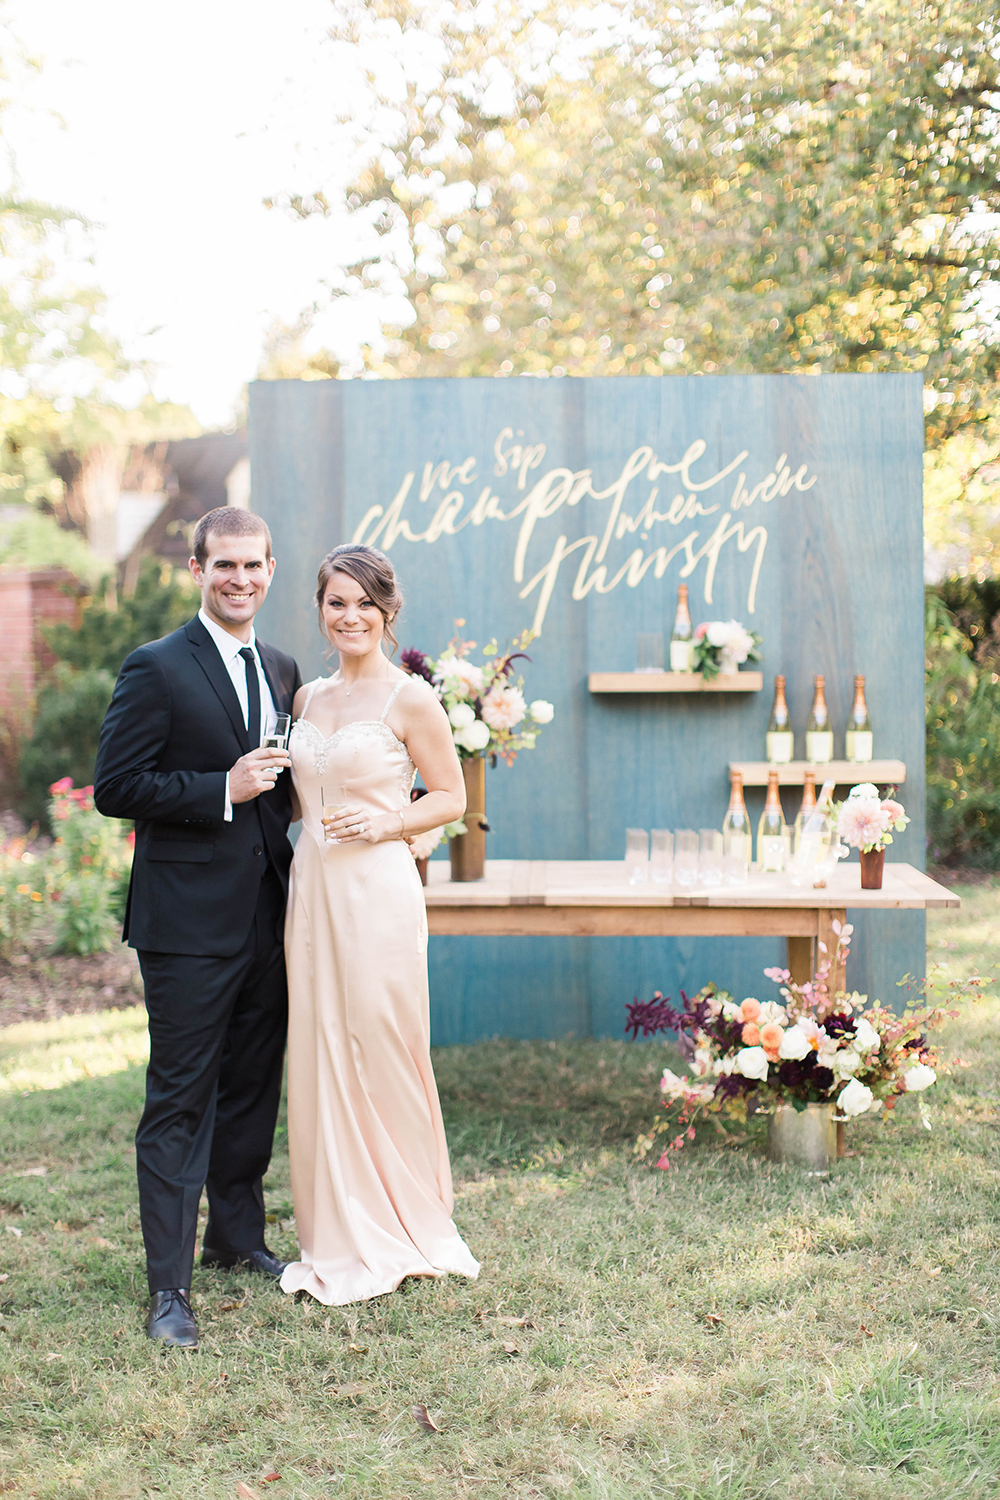 Historic Garden Wedding Inspiration - photo by Candice Adelle Photography http://ruffledblog.com/historic-garden-wedding-inspiration